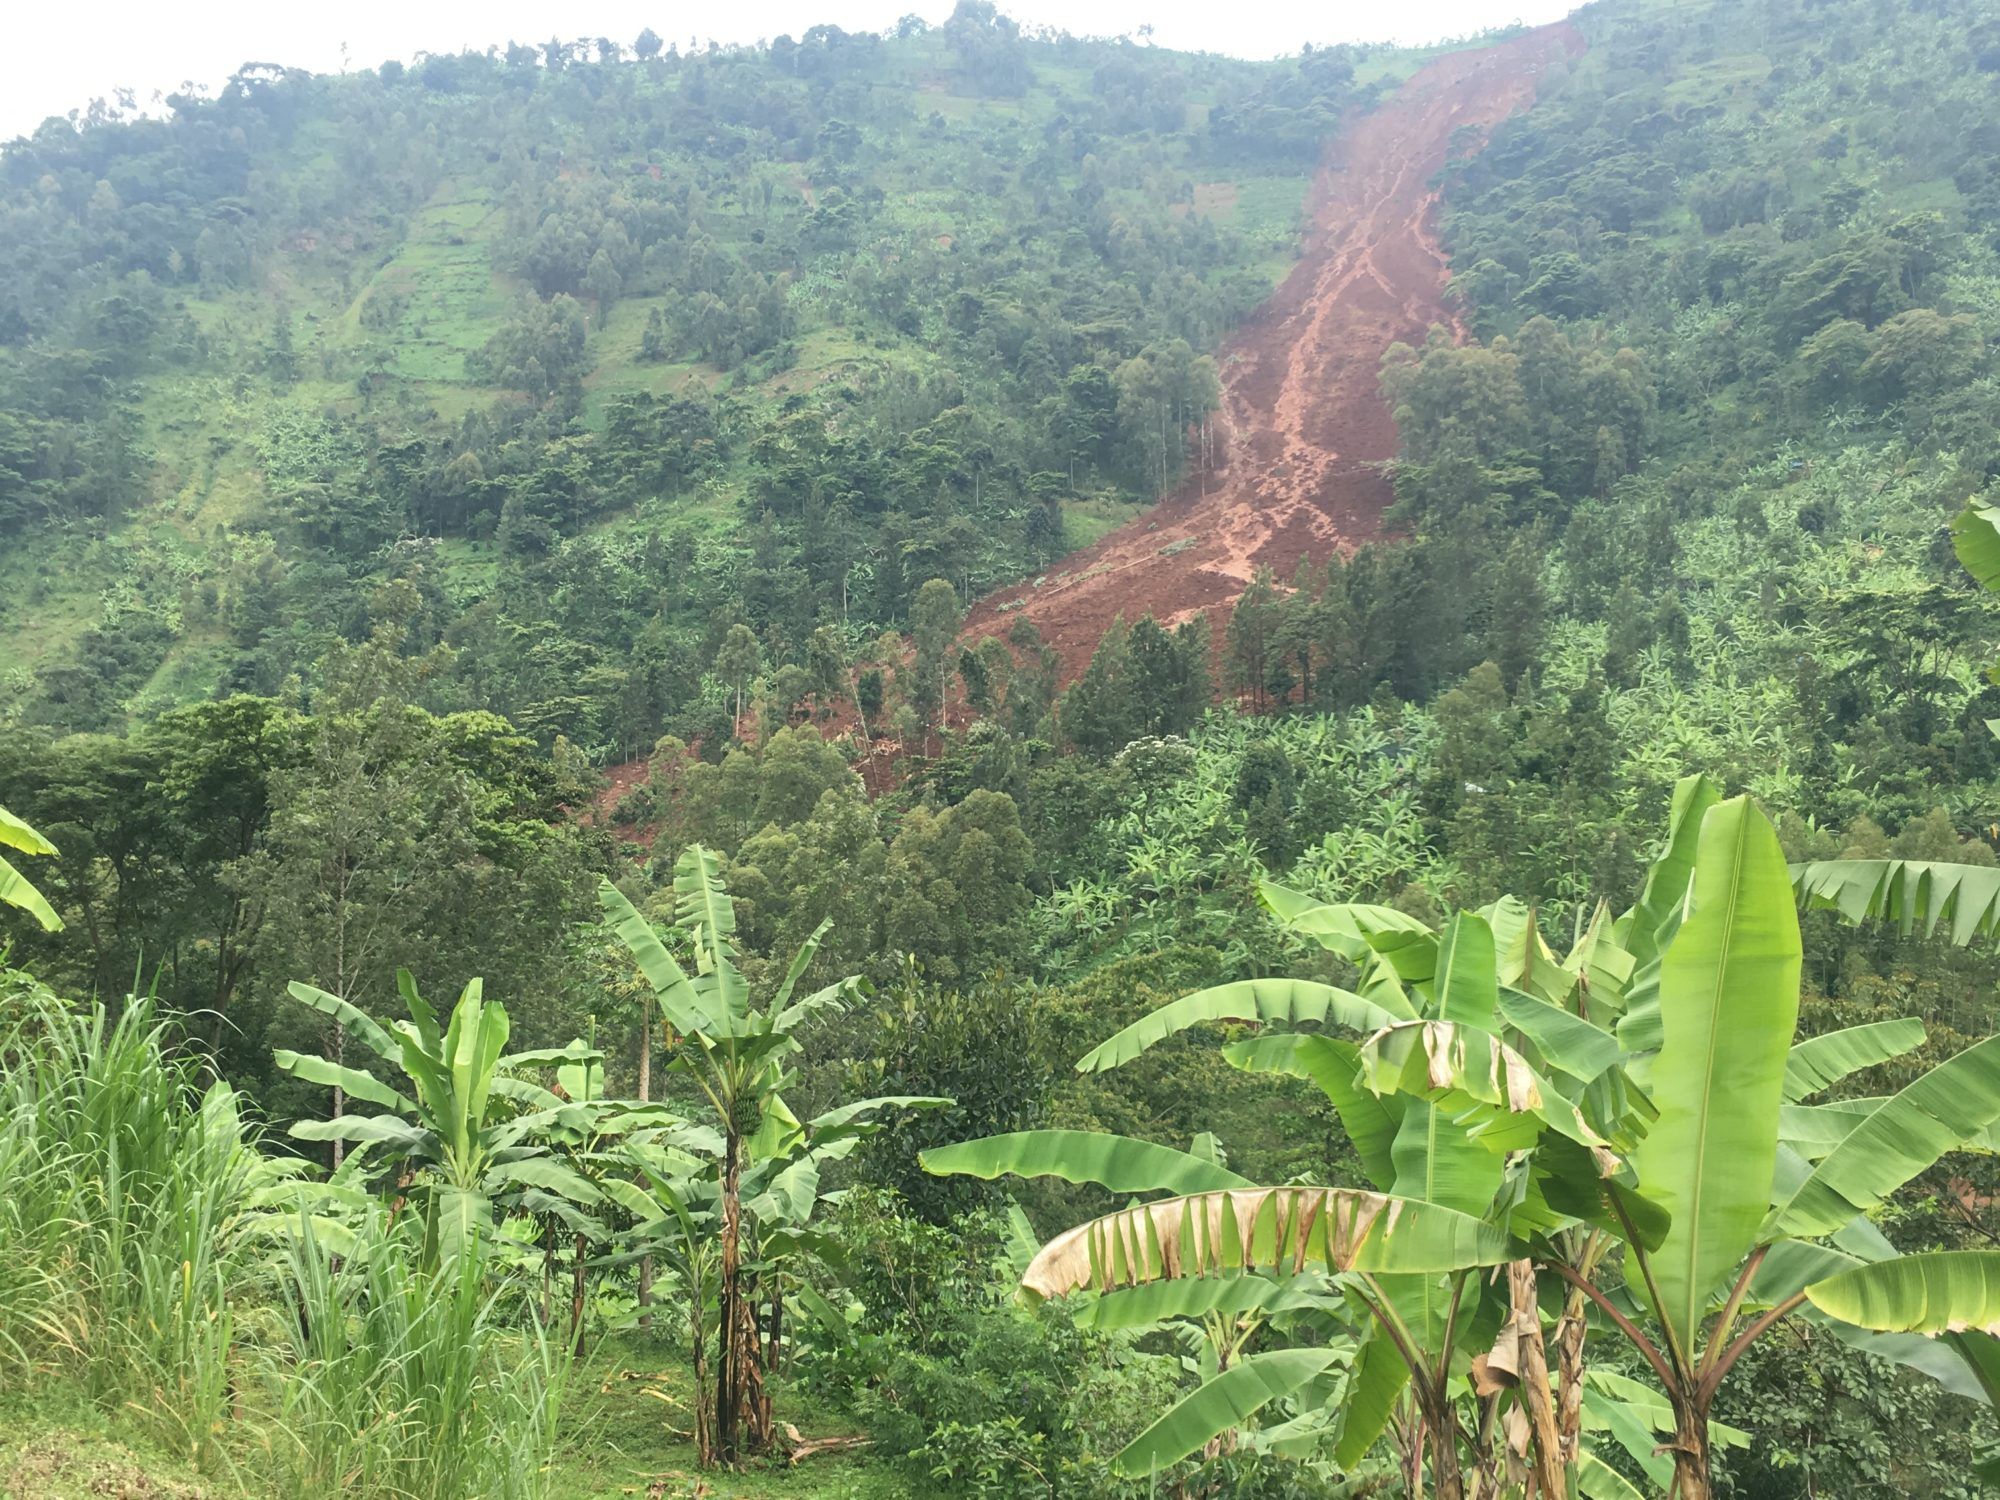 Landscape image of landslide with greenery surrounding